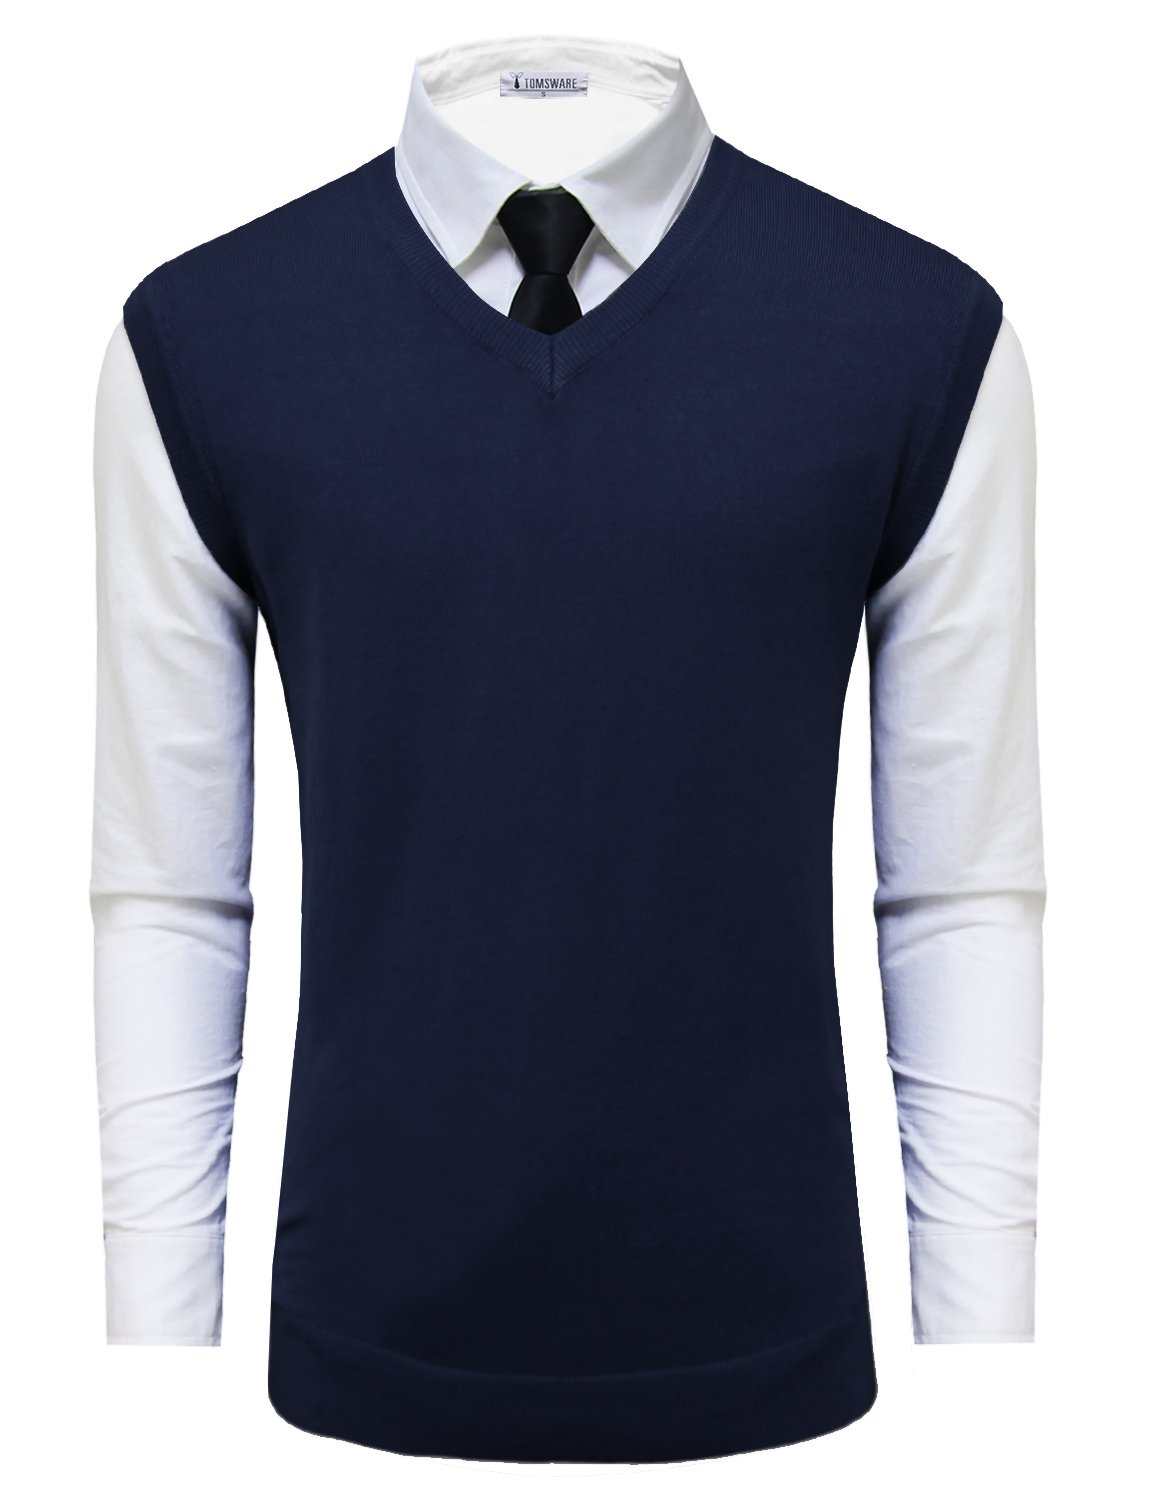 Tom's Ware Mens Casual Pullover V-Neck Sweater Vest TWMV05-NAVY-US L by Tom's Ware